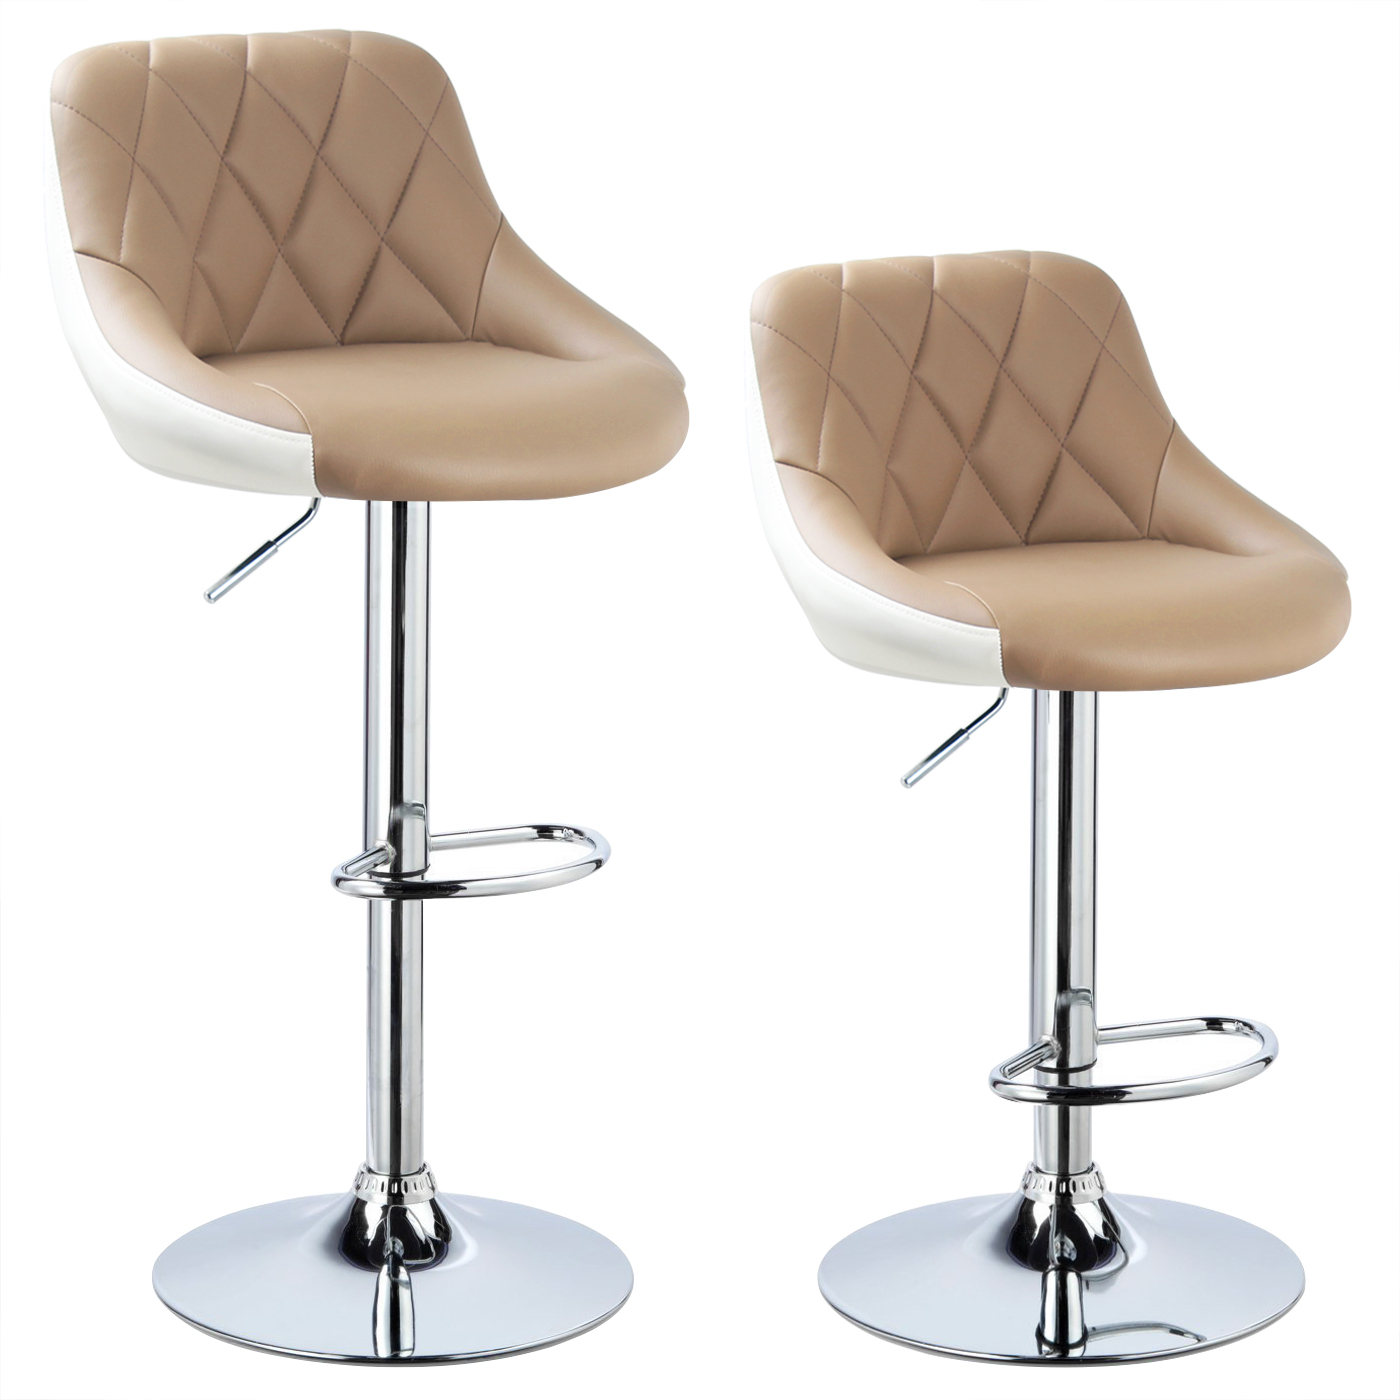 2 X Bar Stools Faux Leather Breakfast Kitchen Swivel Stool Chair With Back U030 Ebay